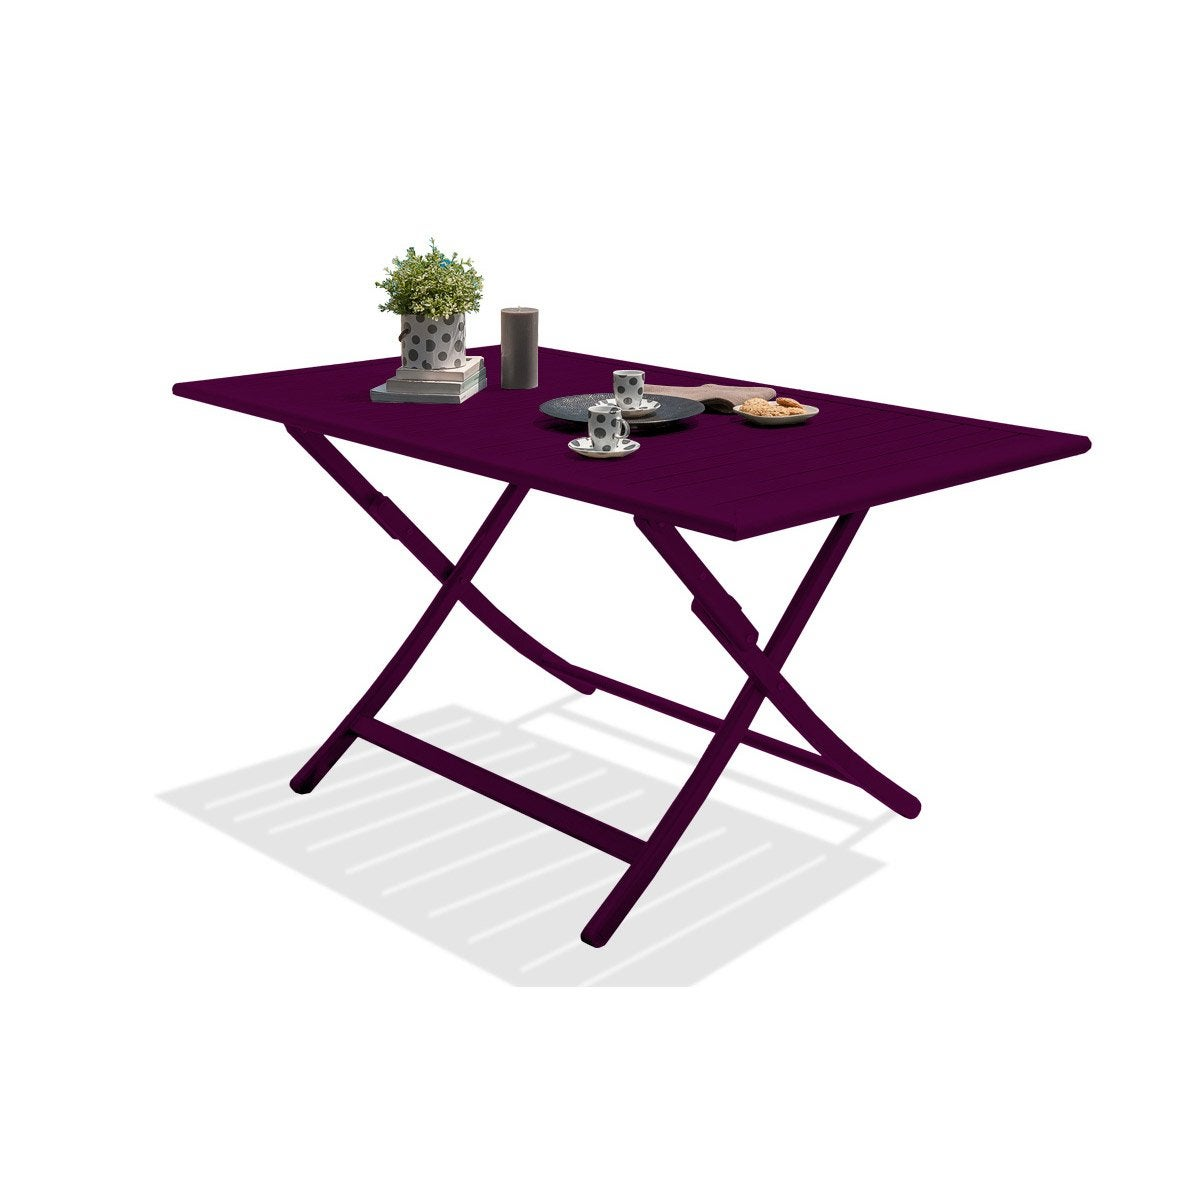 Table Bistrot 4 Personnes Charmant Table De Jardin De Repas Marius Rectangulaire Aubergine 4 6 Of 24 Inspirant Table Bistrot 4 Personnes